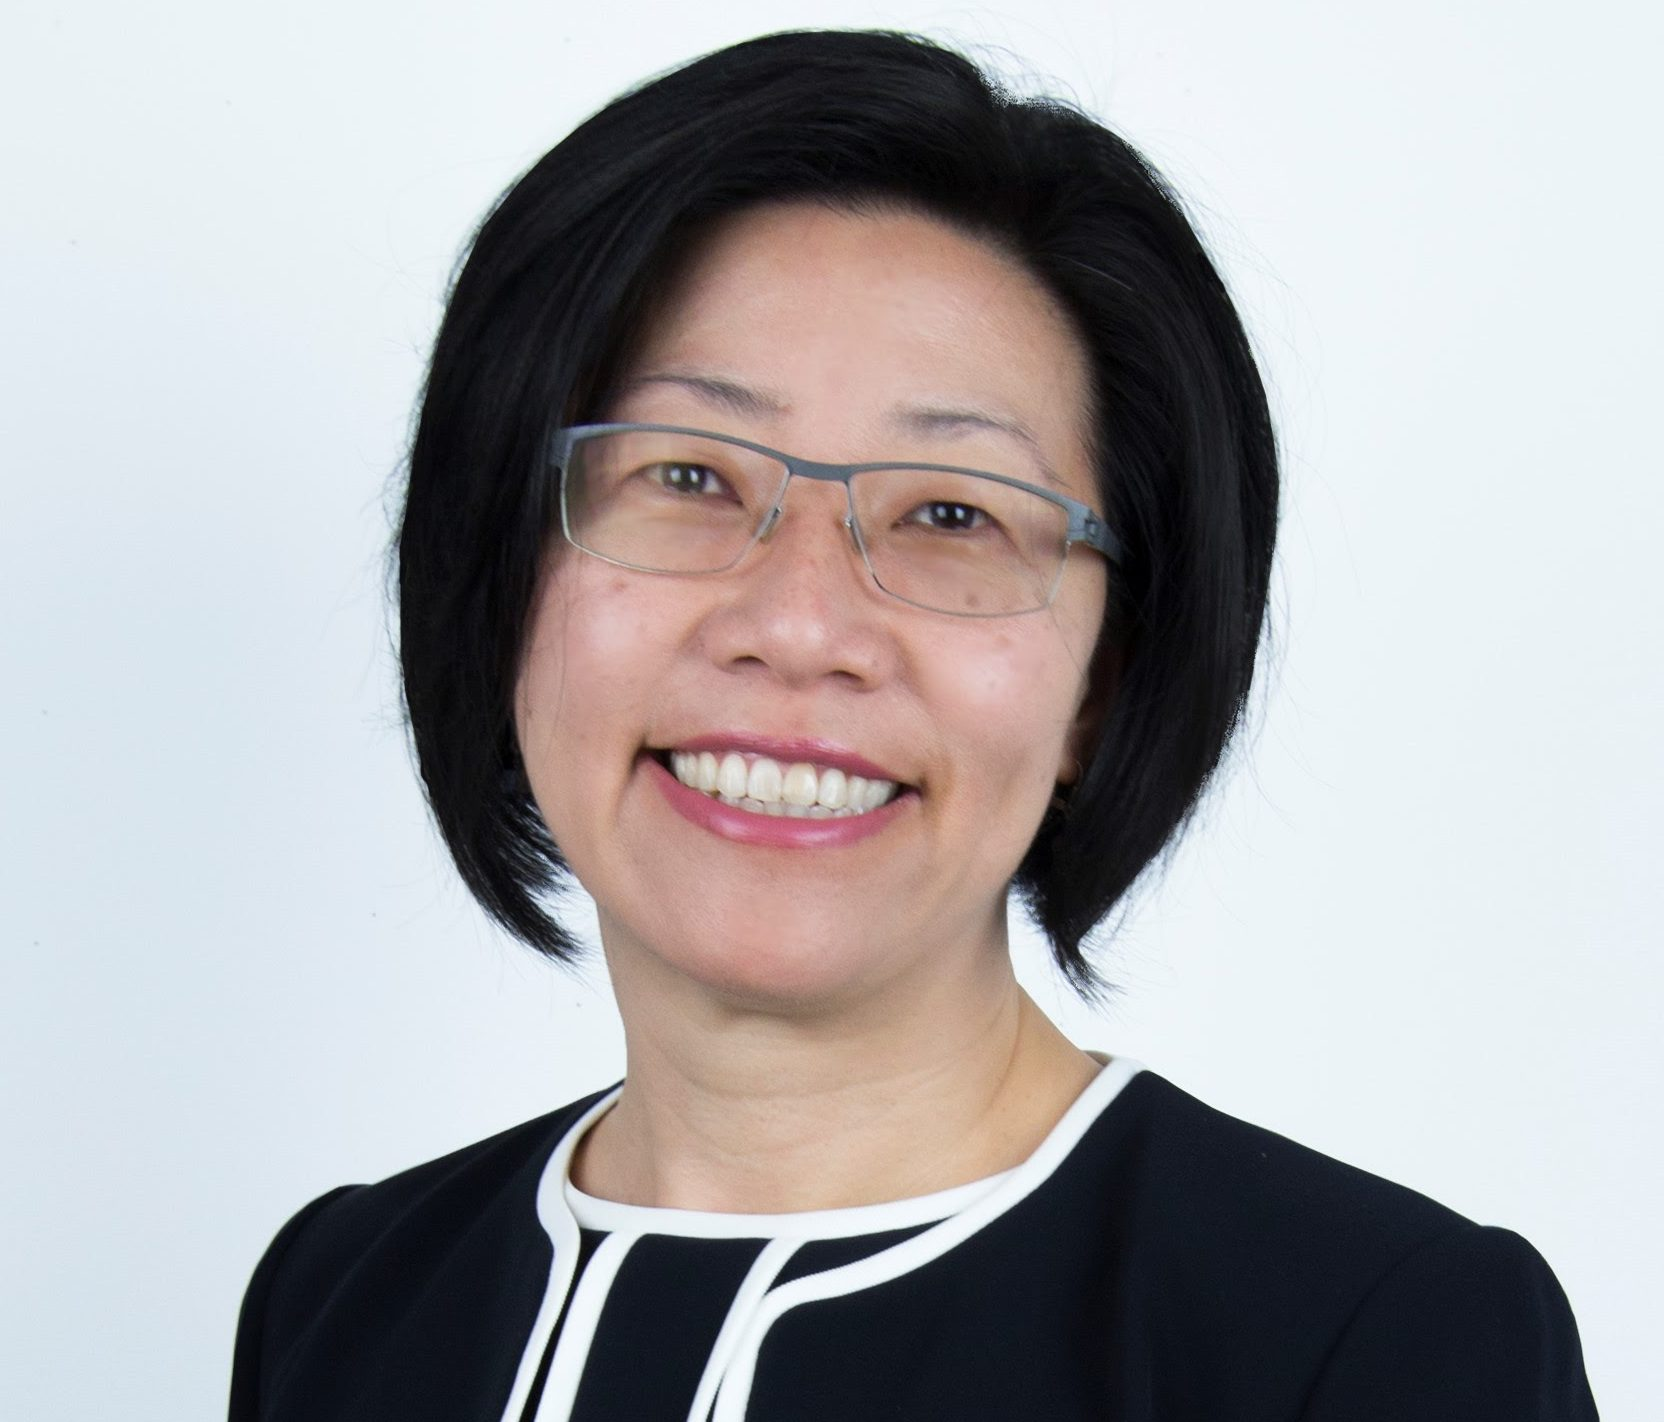 Jackson Costa Cool smithgroupjjr hires rosa sheng to boost higher education and